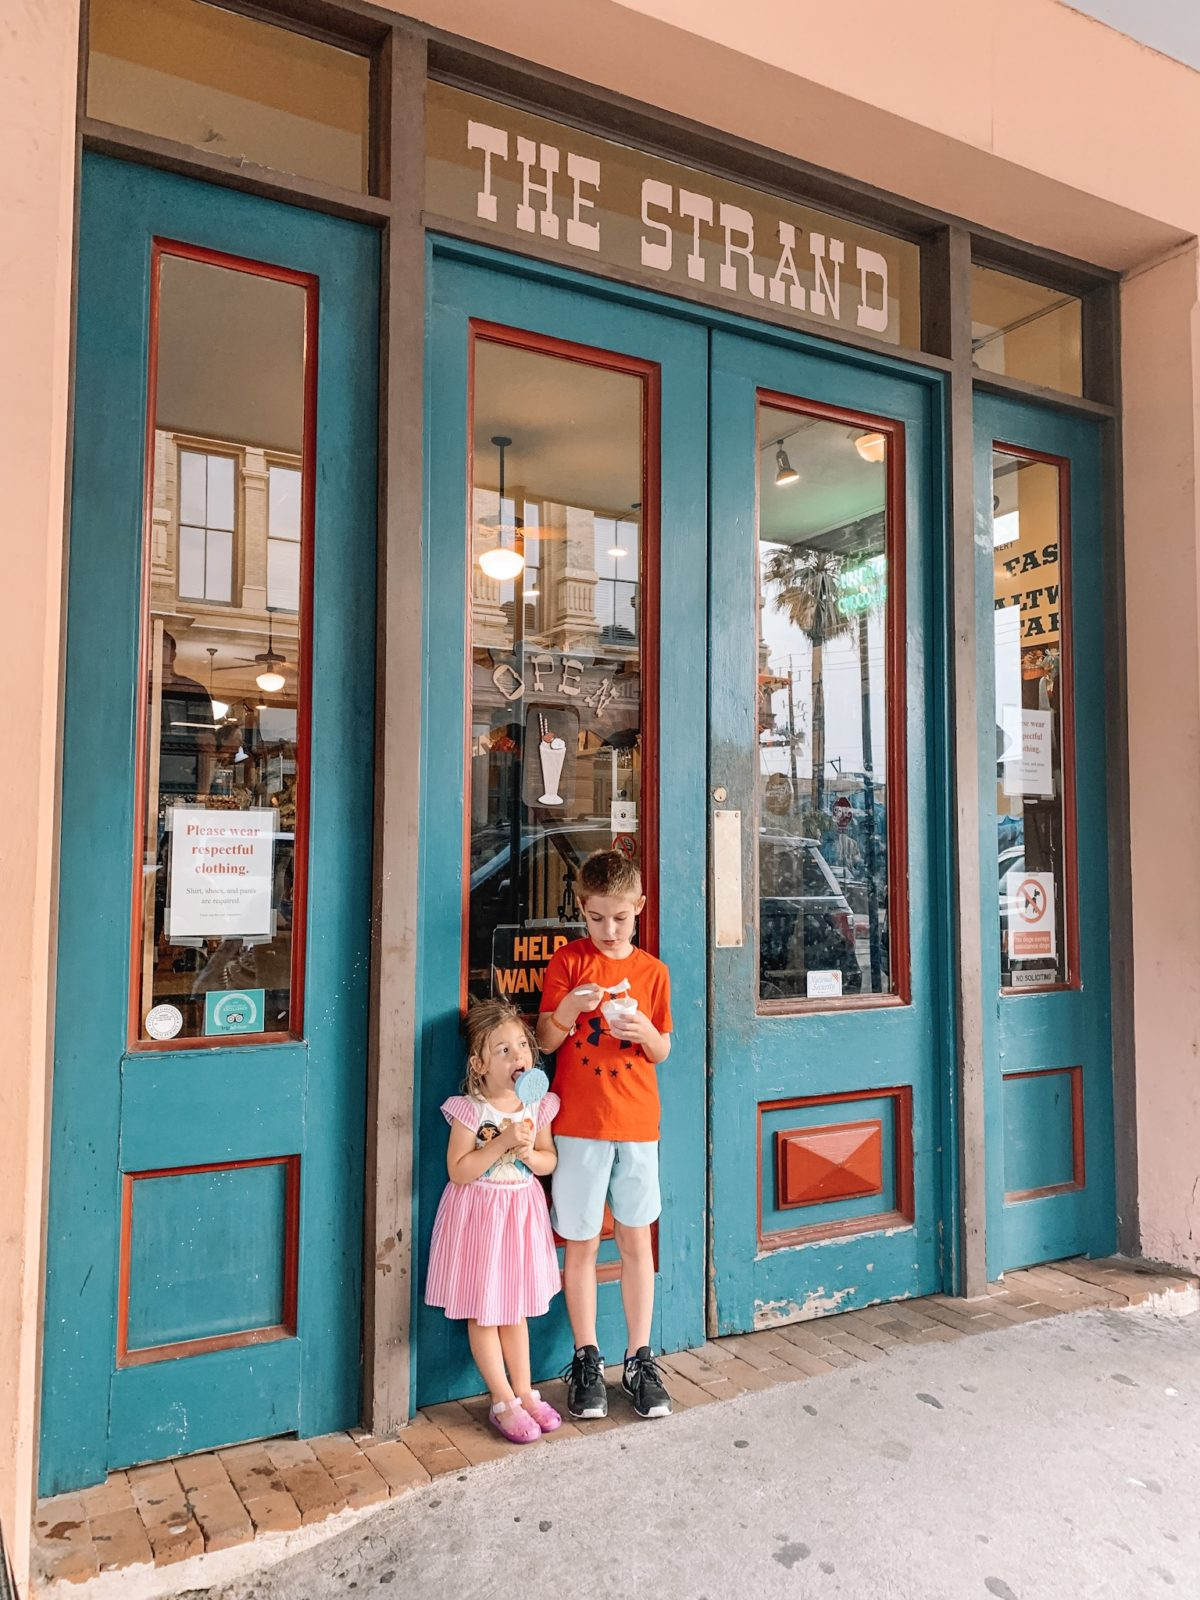 48 Hours in Galveston - the strand icecream